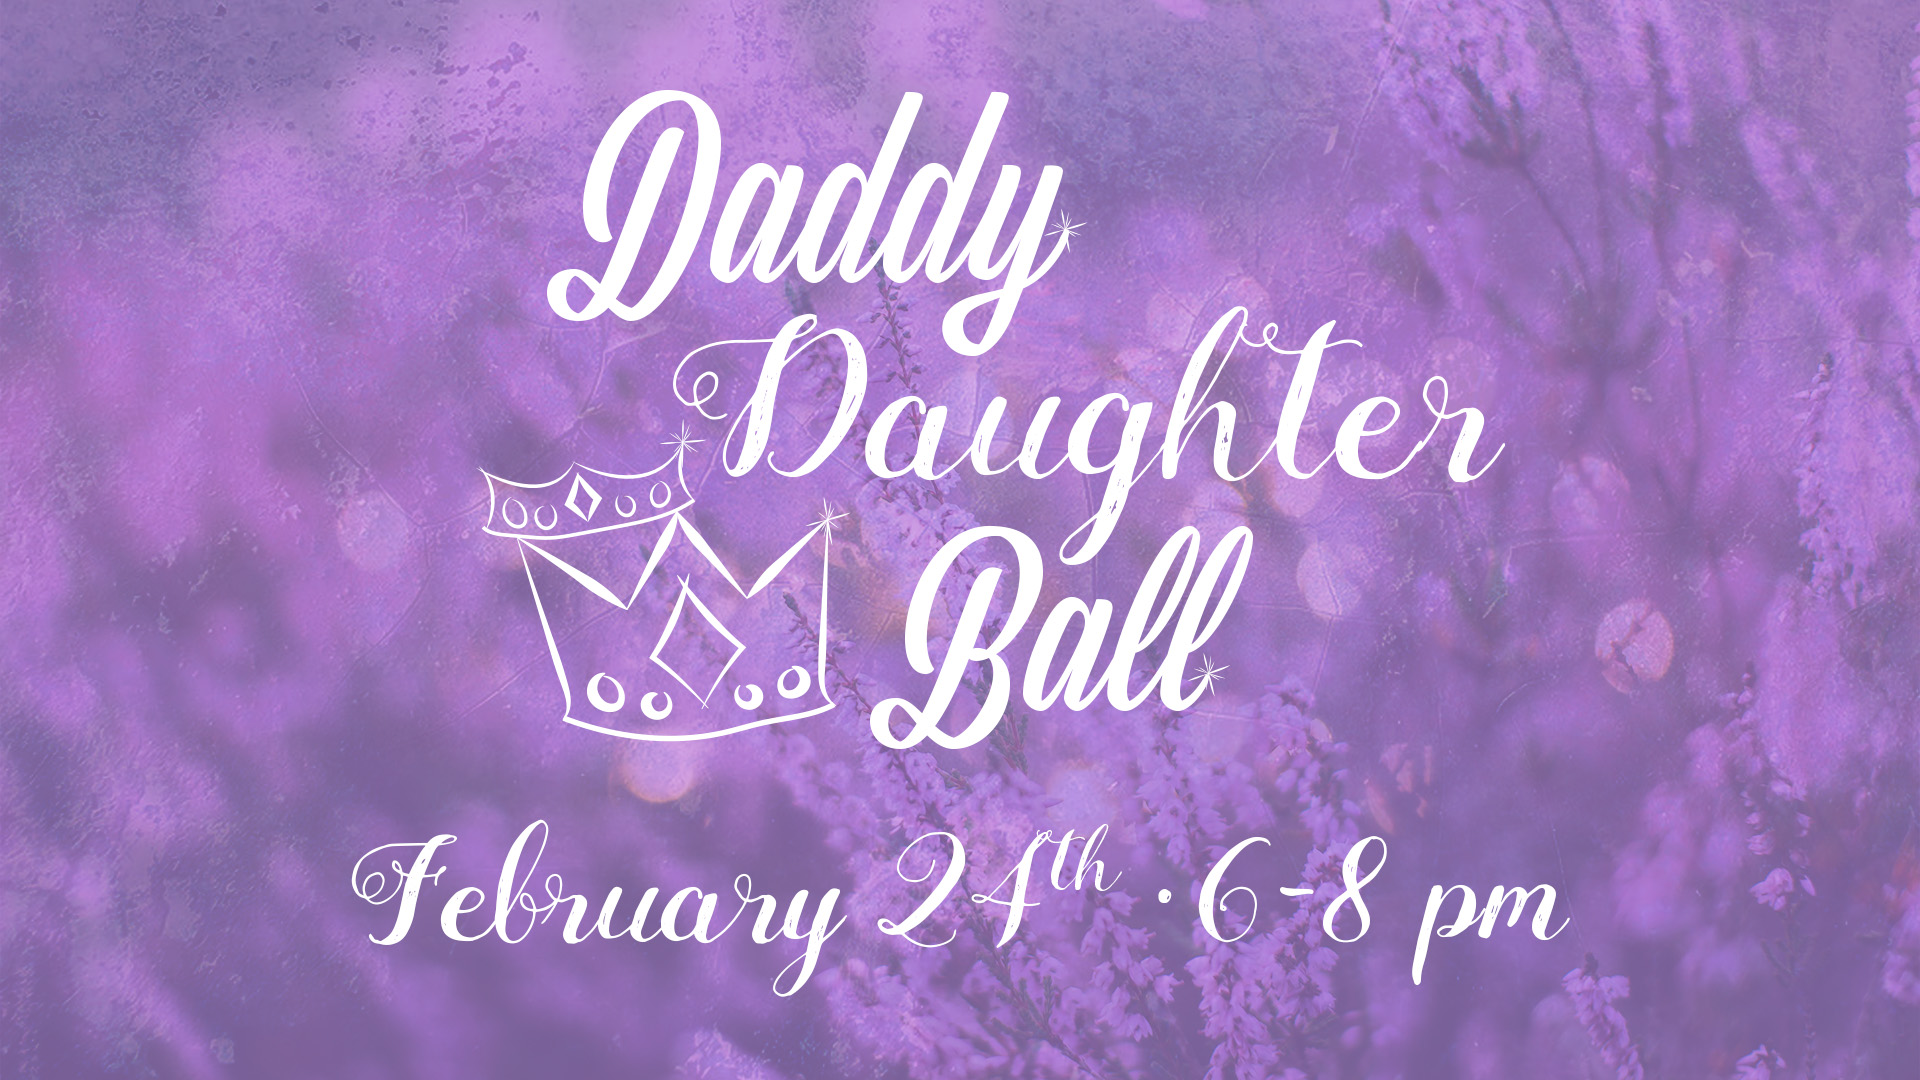 Daddydaughterball